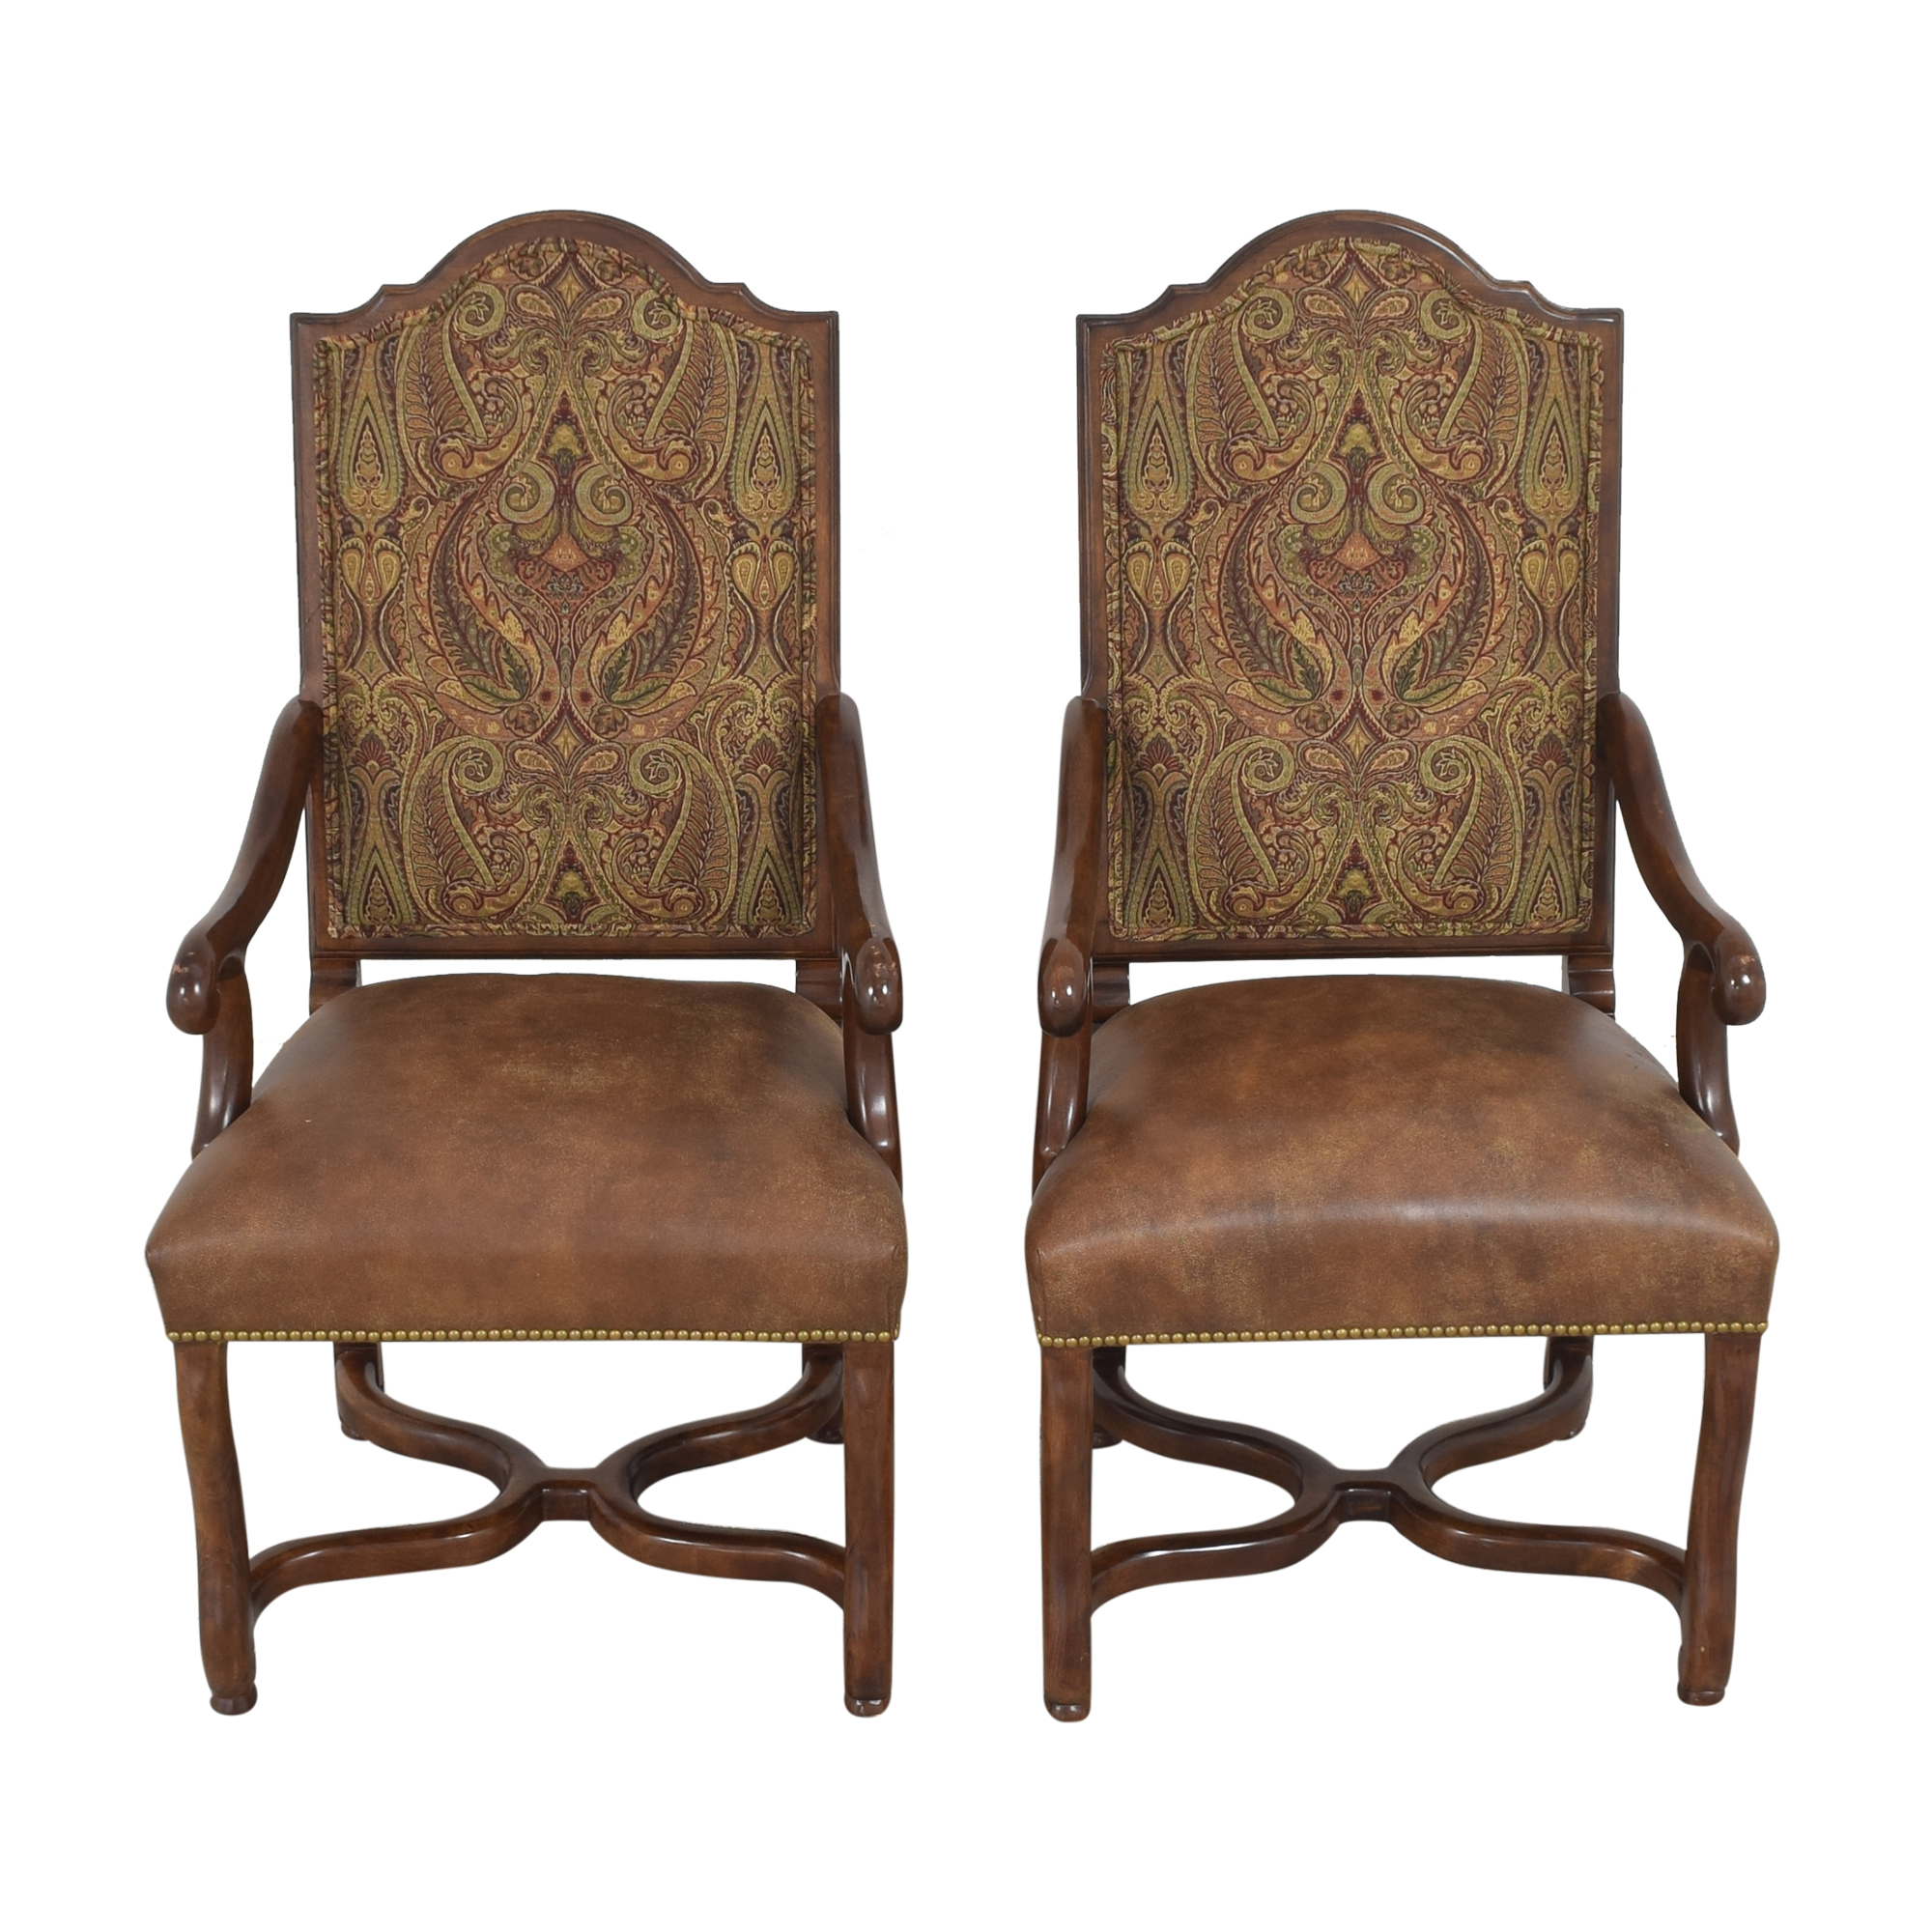 Century Furniture Mill Room Dining Chairs / Chairs